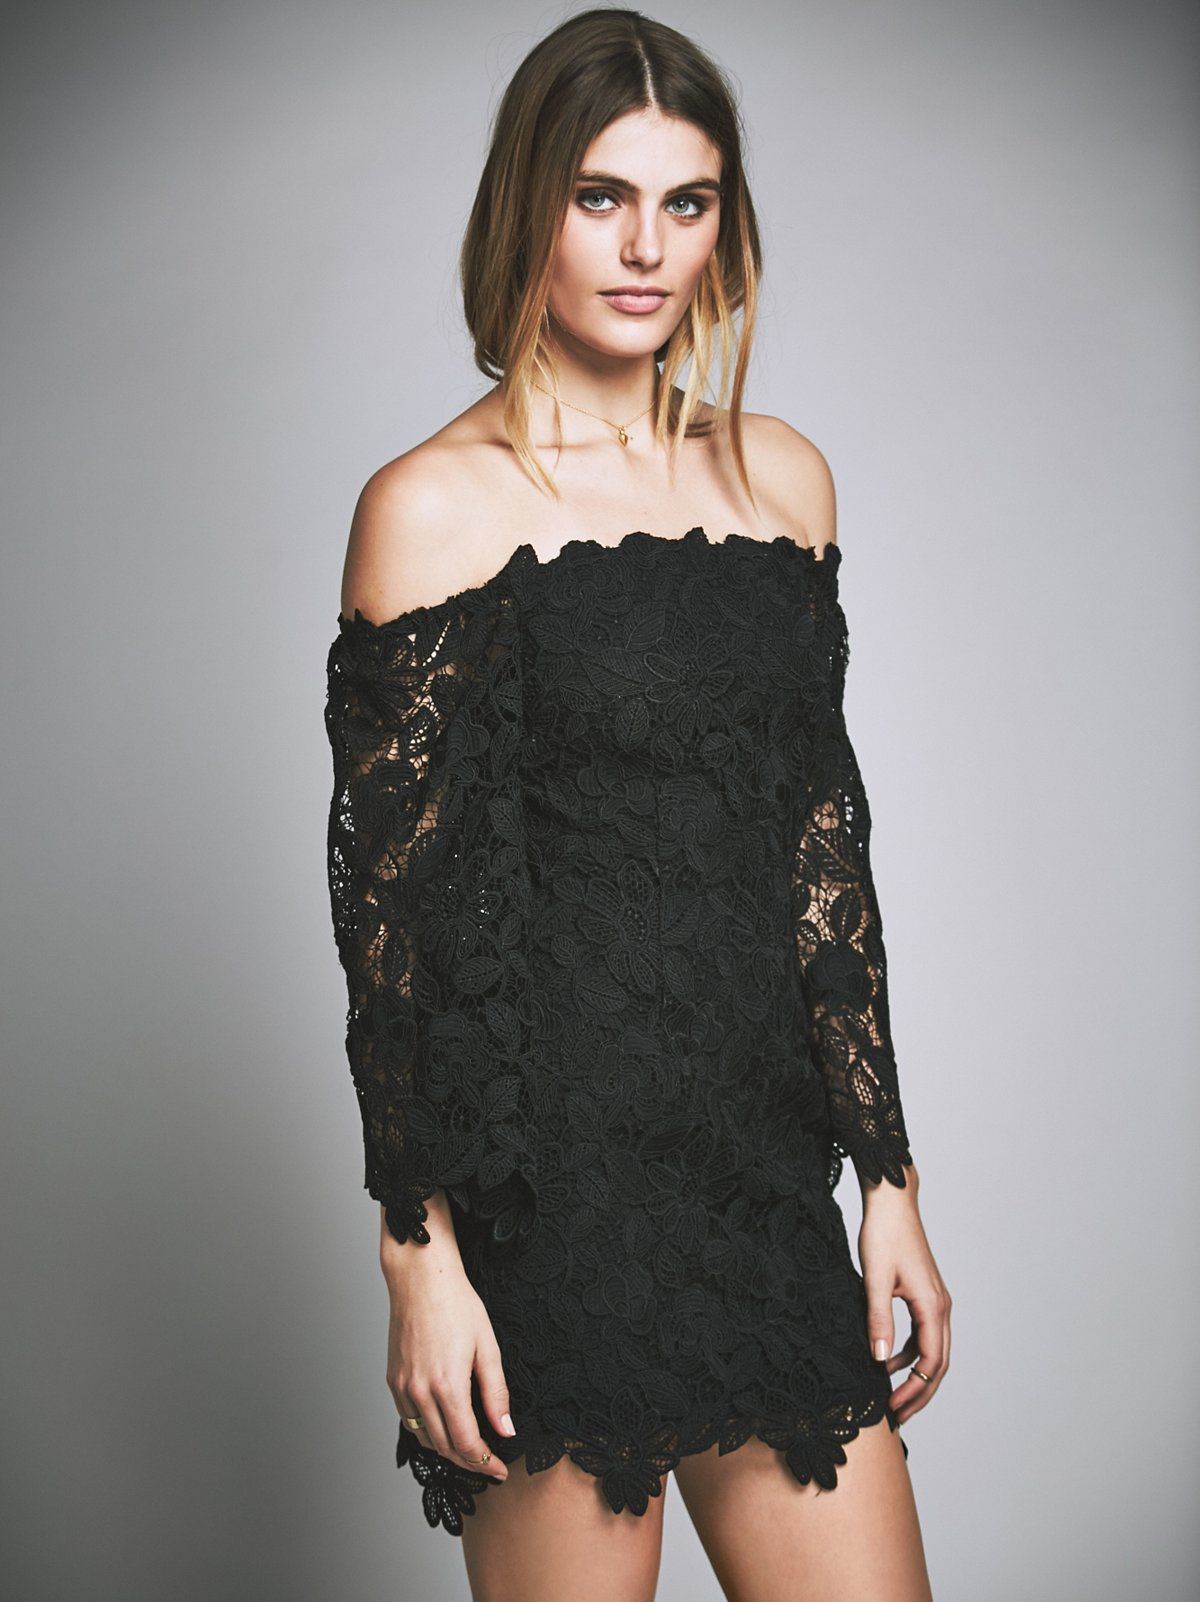 Dusk Lace Party Dress